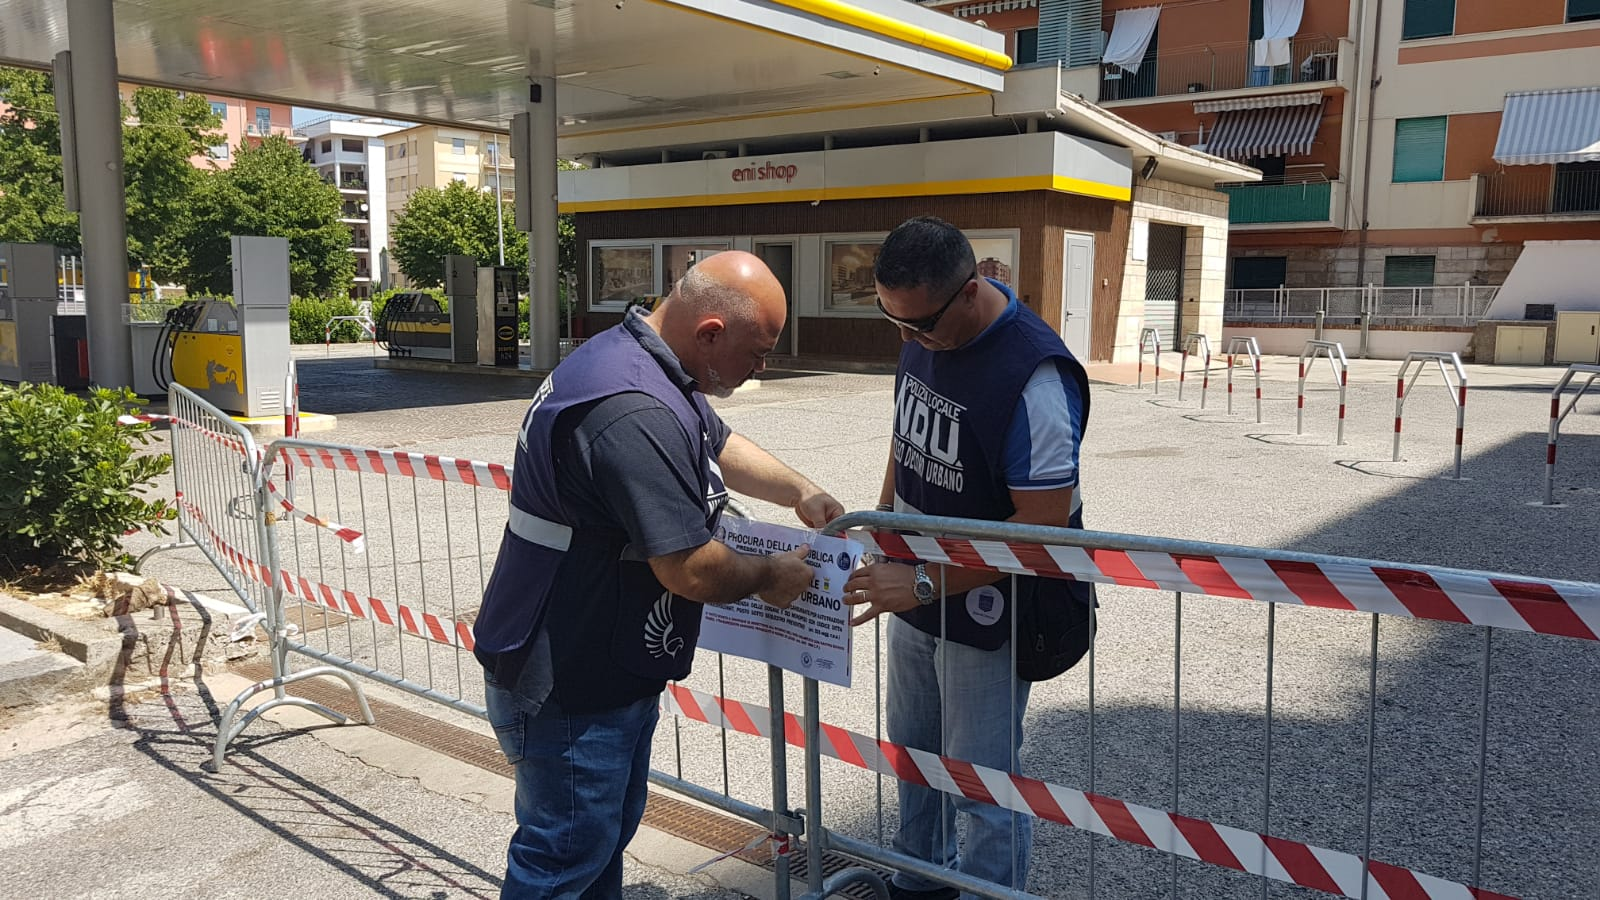 Sequestro impianto carburante Eni via Caloprese